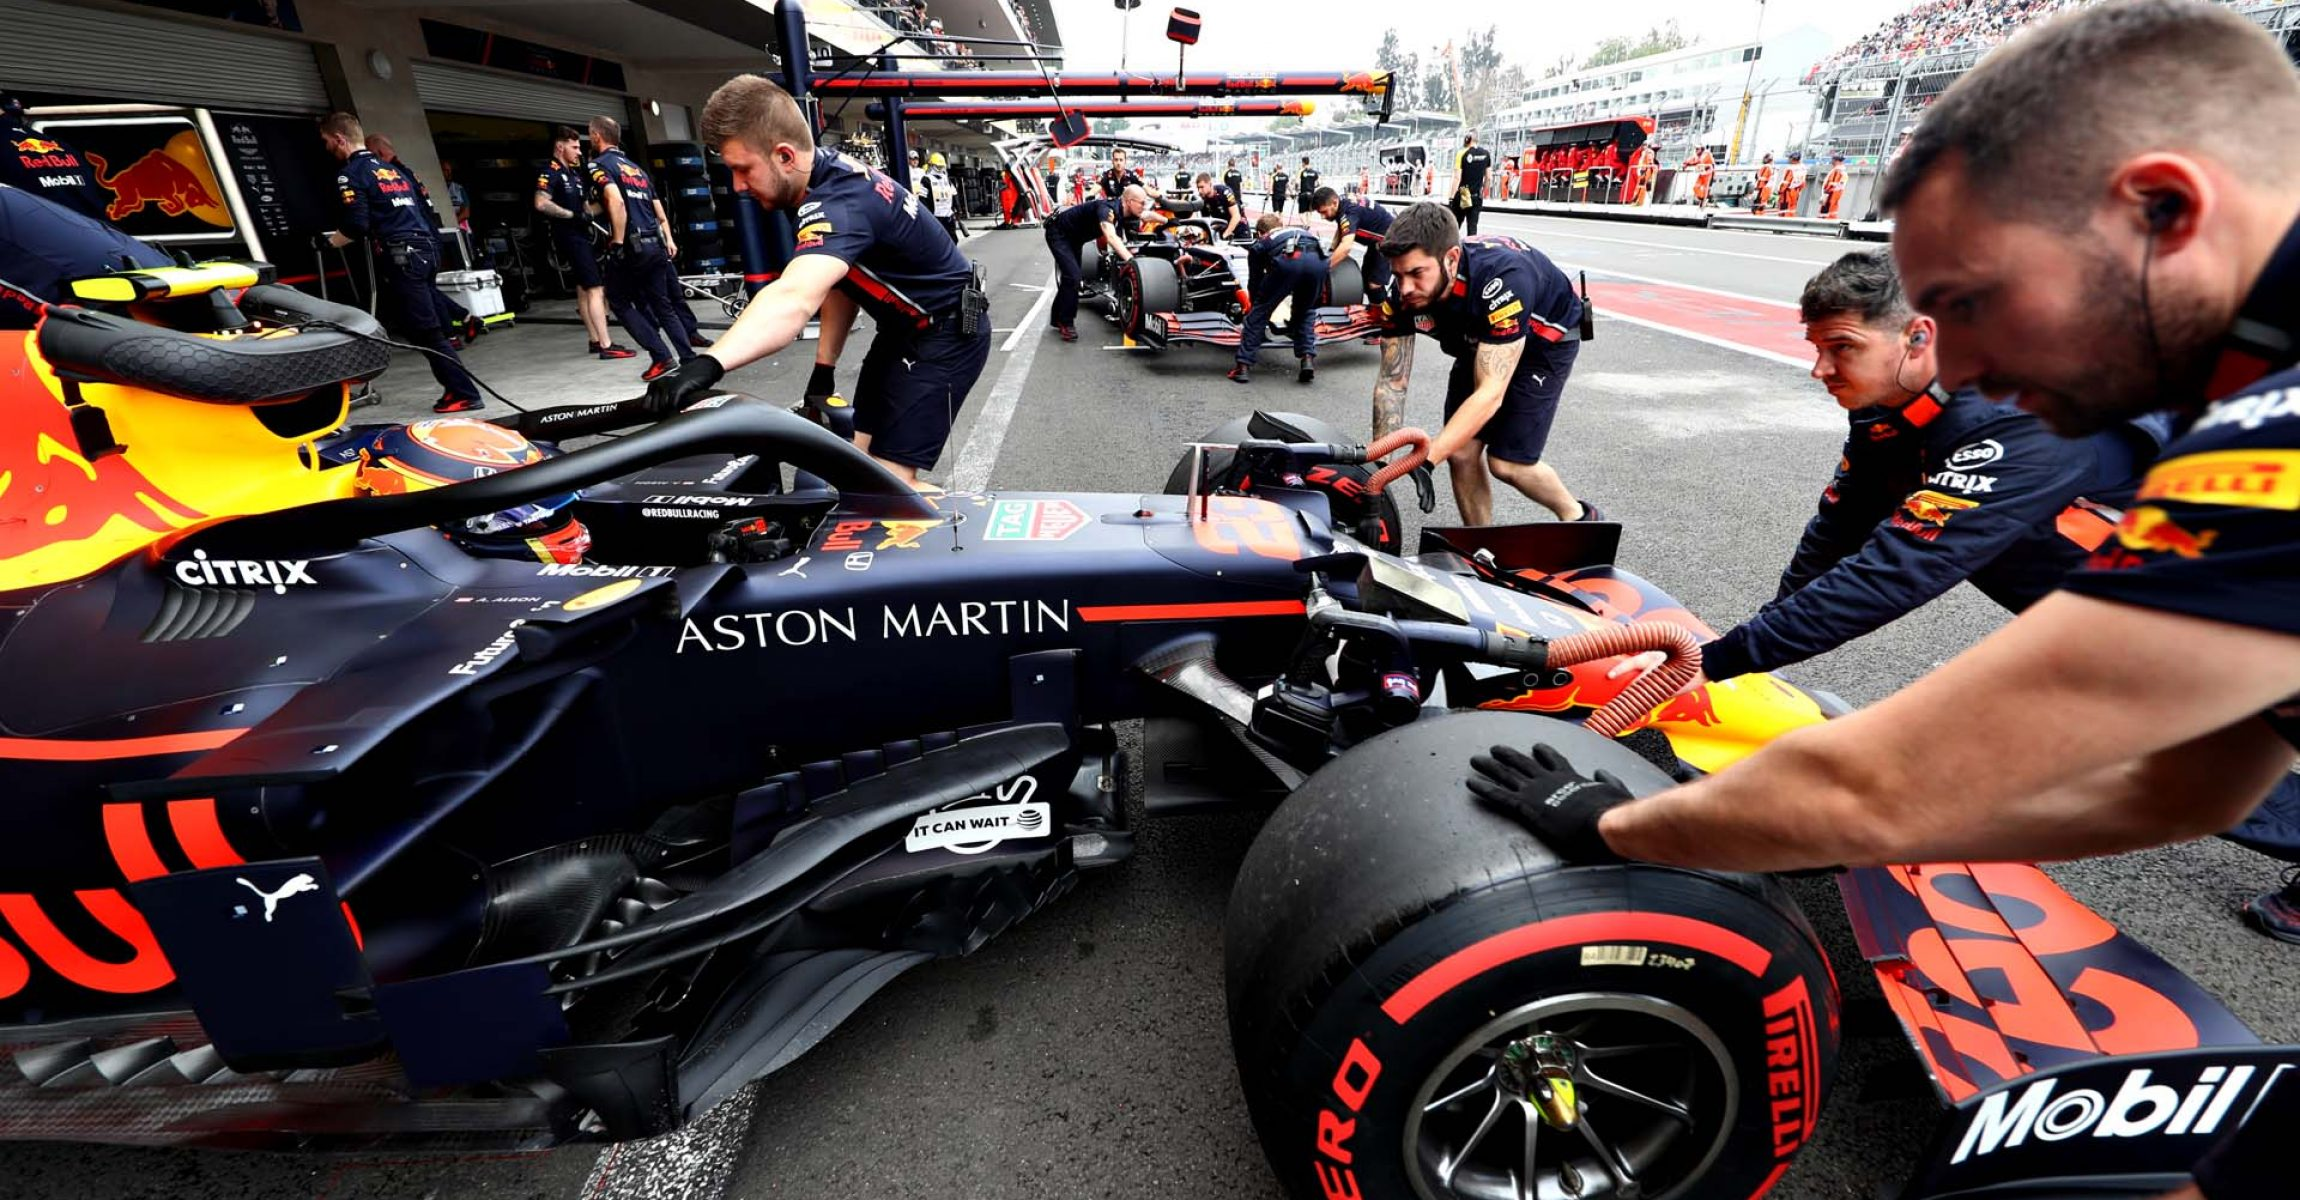 MEXICO CITY, MEXICO - OCTOBER 26: Alexander Albon of Thailand driving the (23) Aston Martin Red Bull Racing RB15 is pushed back into the garage during qualifying for the F1 Grand Prix of Mexico at Autodromo Hermanos Rodriguez on October 26, 2019 in Mexico City, Mexico. (Photo by Mark Thompson/Getty Images) // Getty Images / Red Bull Content Pool // AP-21ZBUTKZS2111 // Usage for editorial use only //